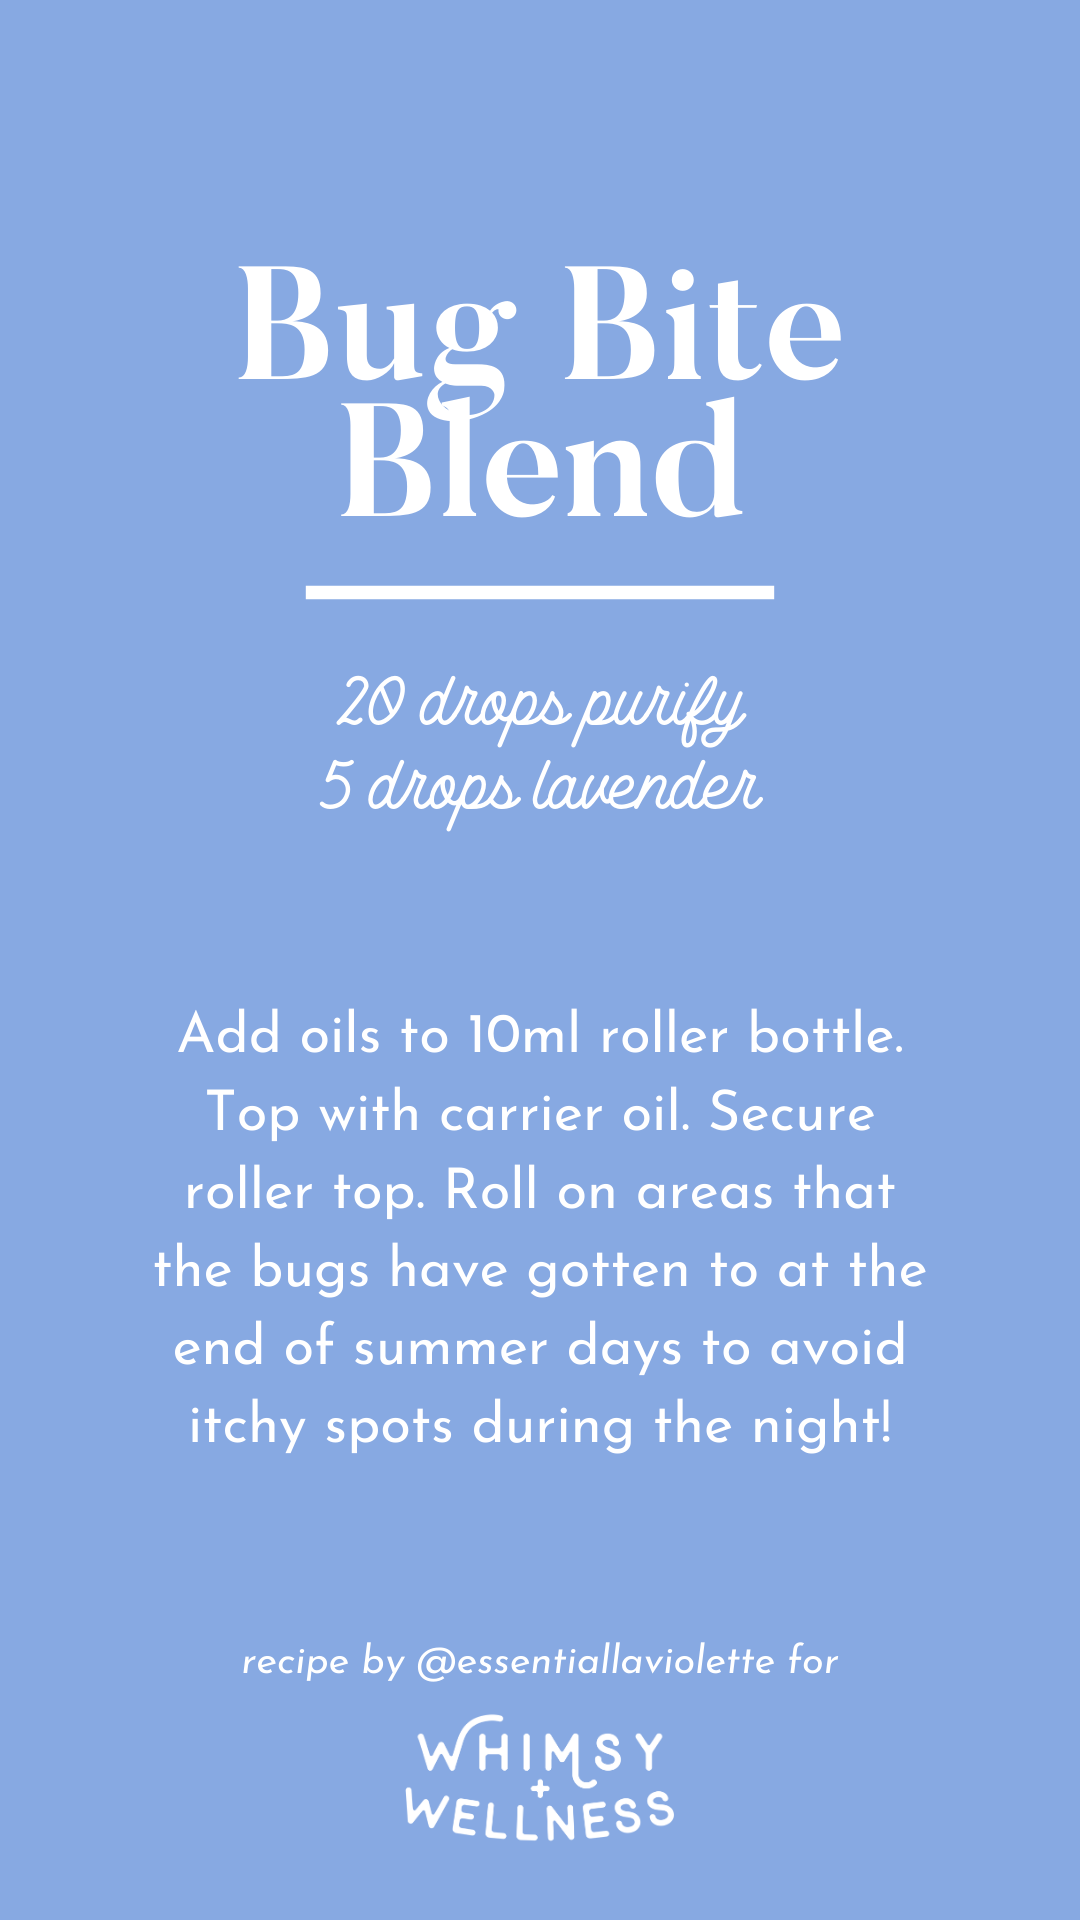 Summertime bug bite roller bottle recipe using doTERRA essential oils